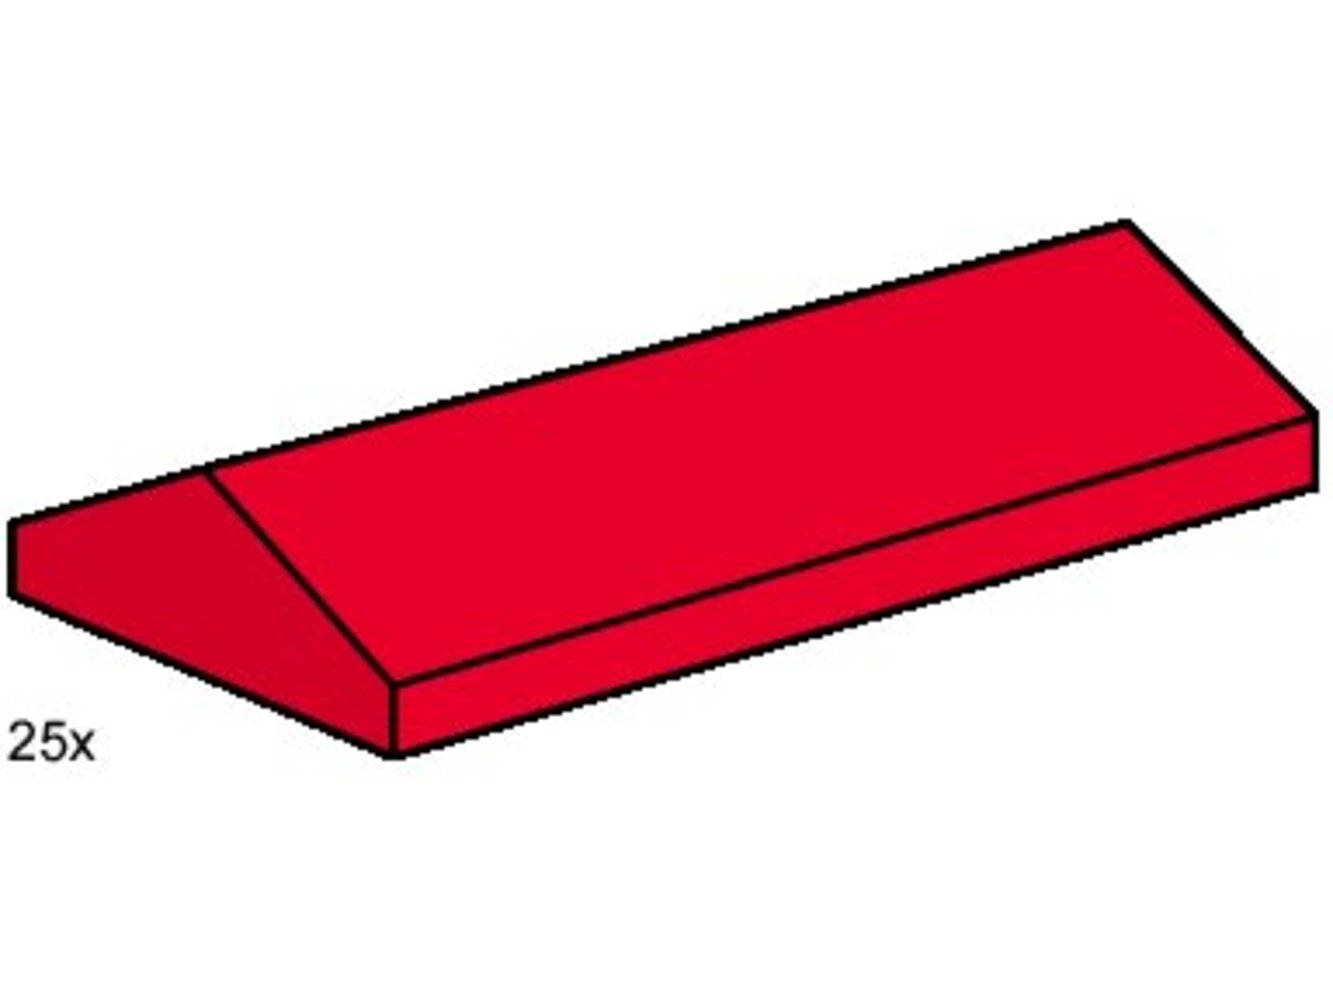 2 x 4 Ridge Roof Tile Low Sloped Red